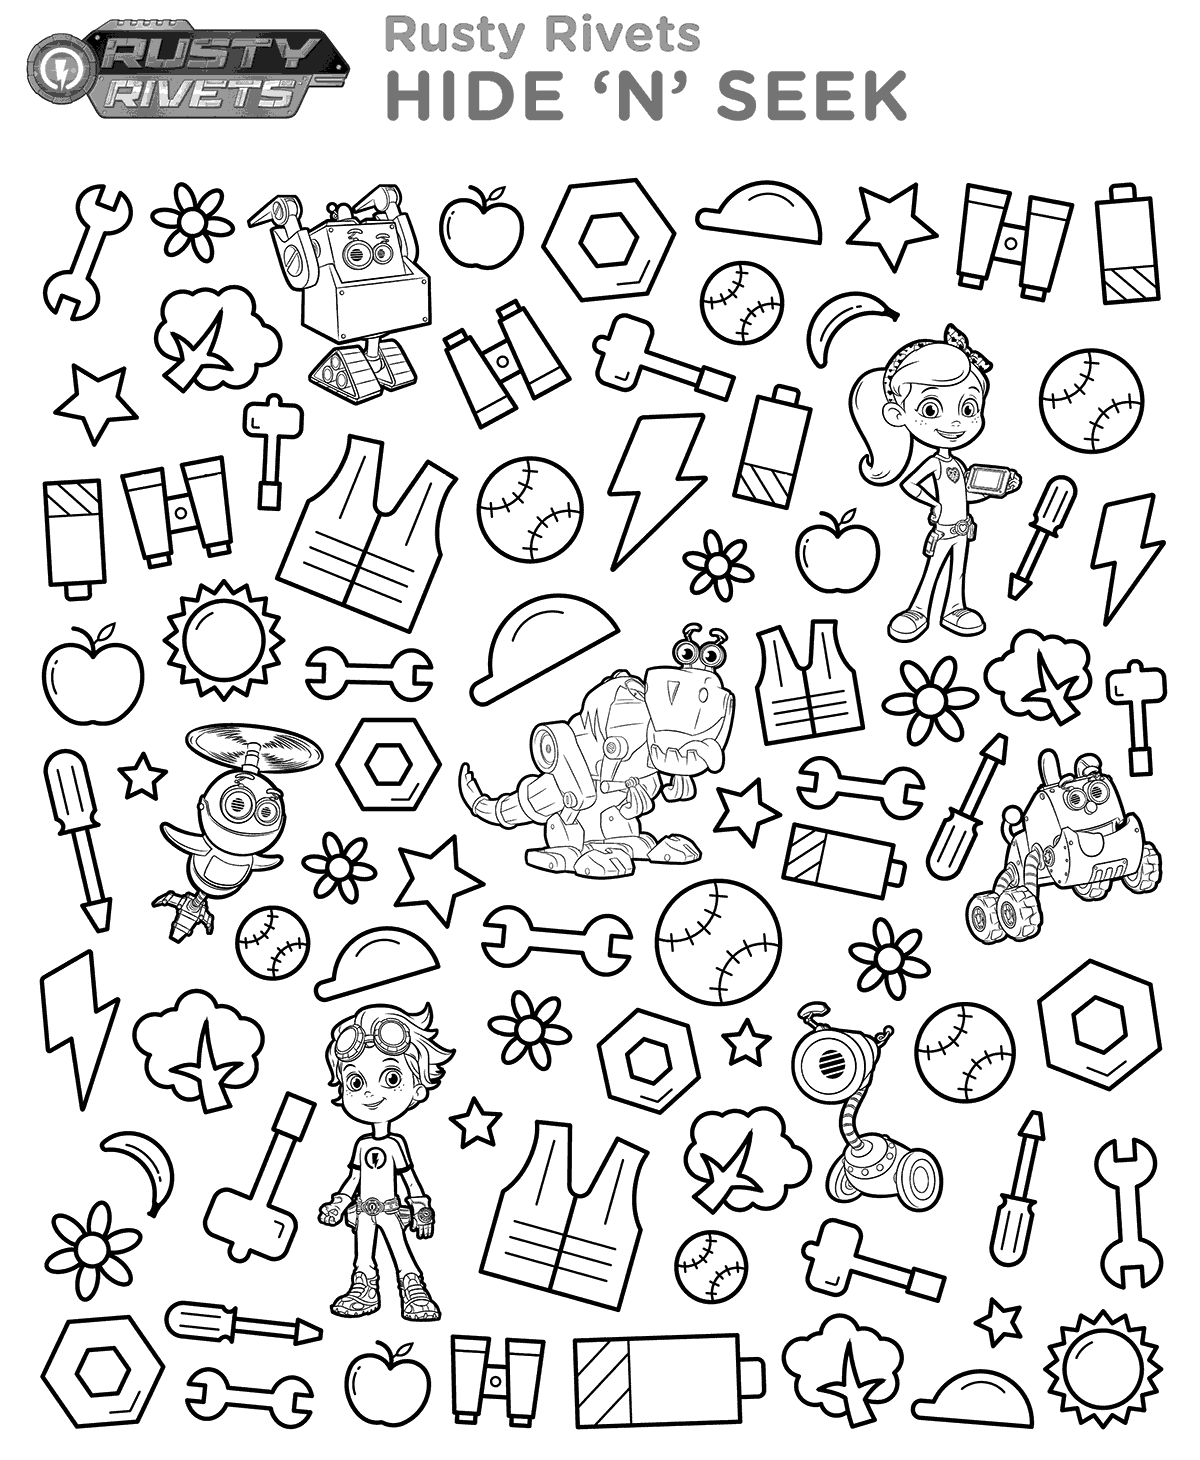 Nick Jr Rusty Rivets Hide N Seek Printable Coloring